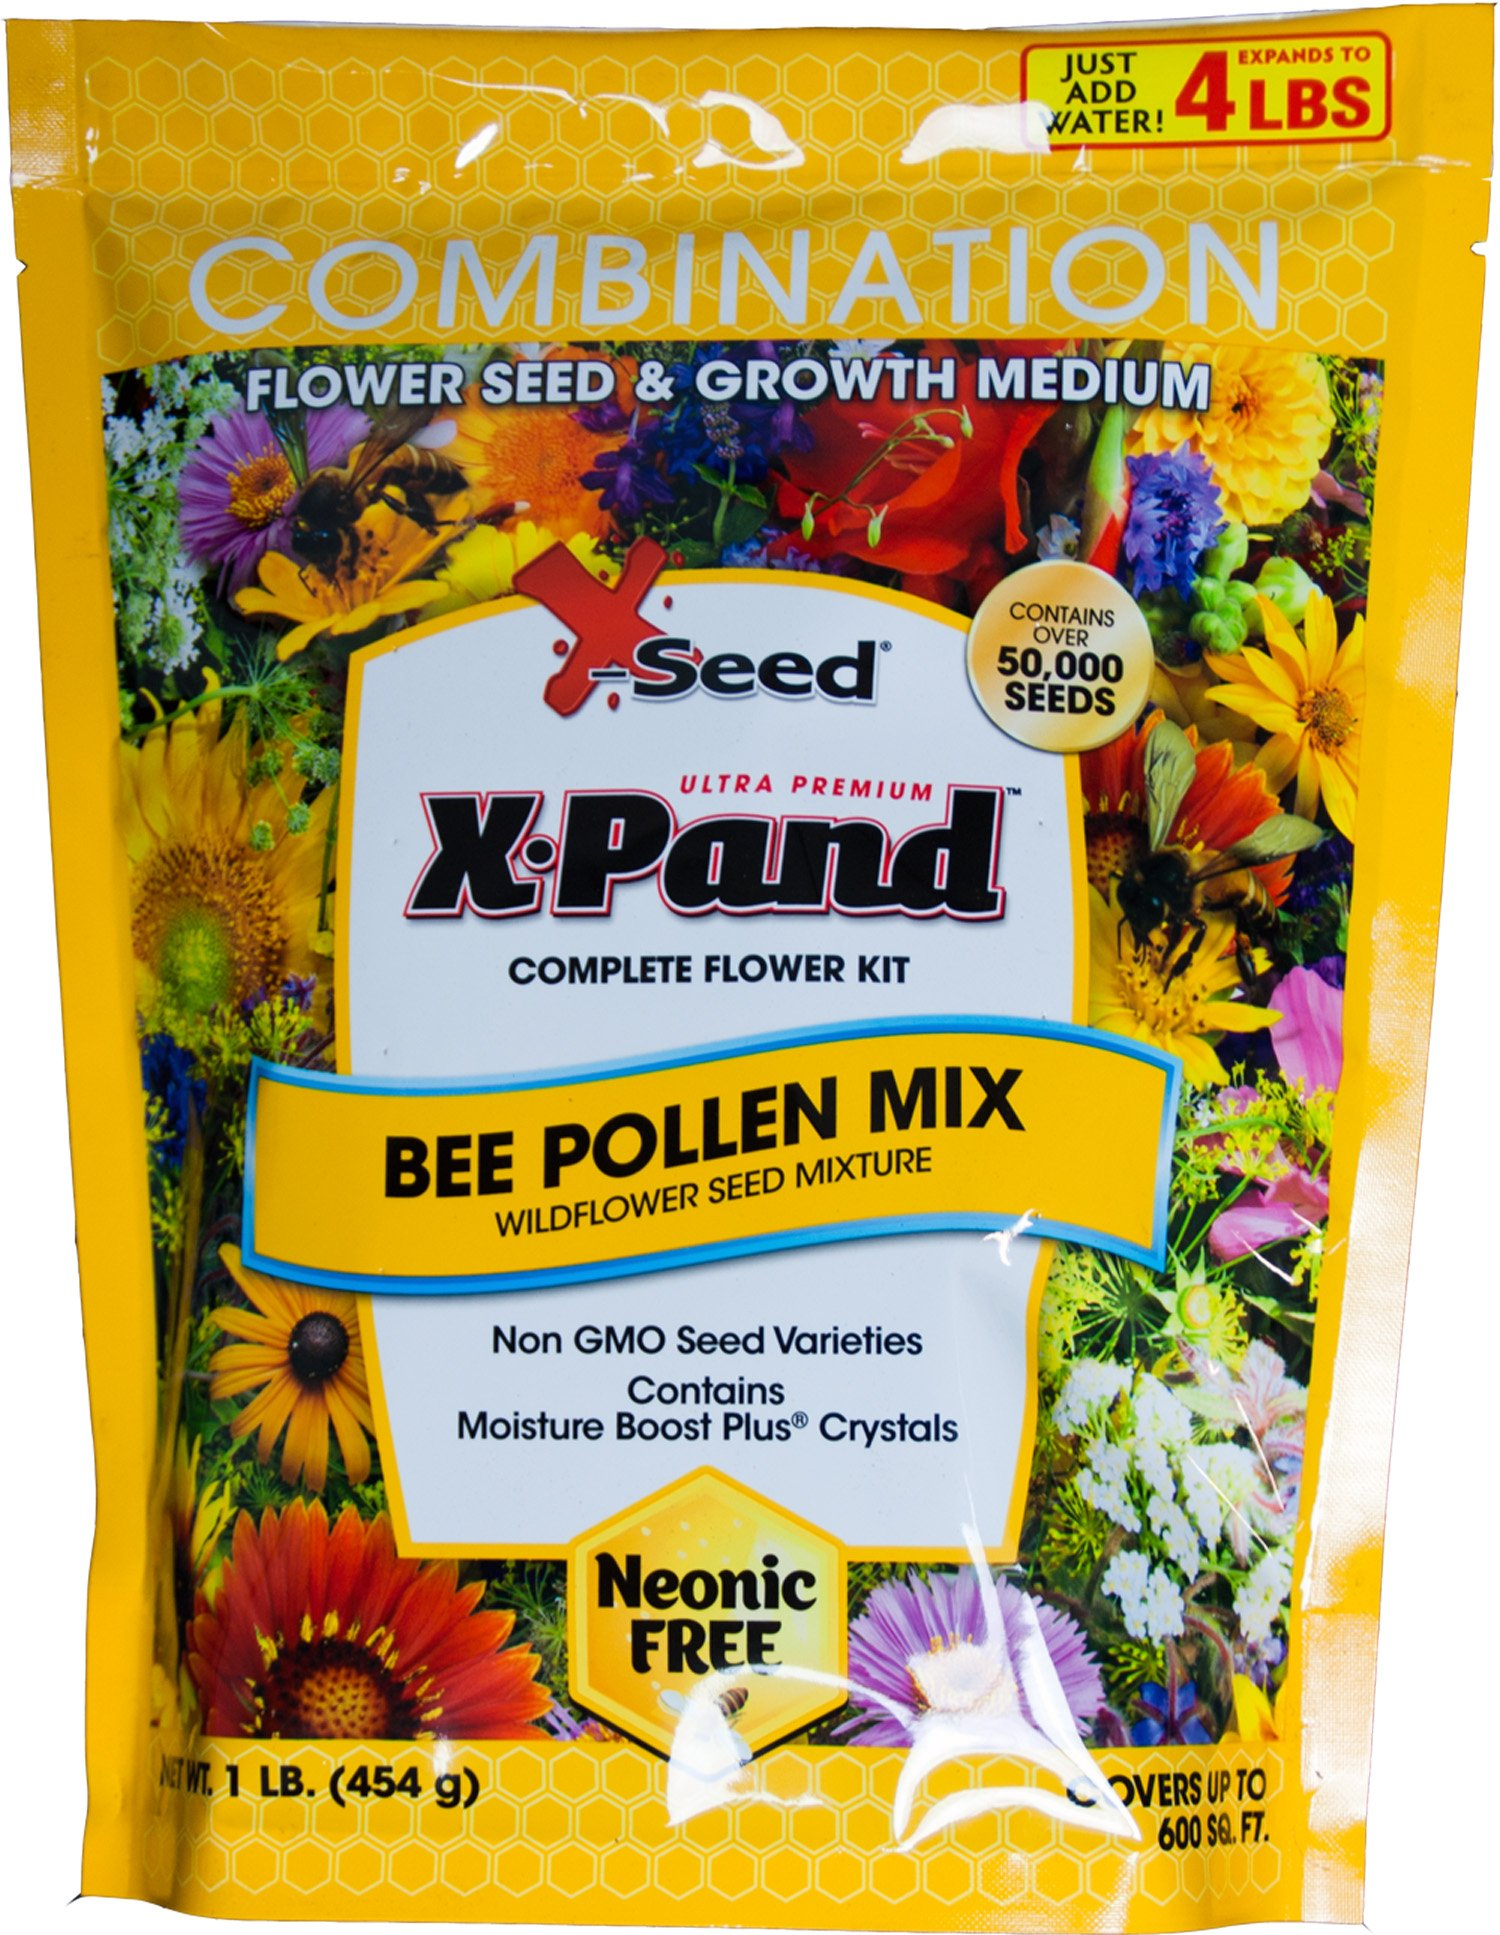 X-Seed 440AS0088UC Bee Pollen Mix Combination Wildflower Seed, 1 lb, Yellow by X-Seed